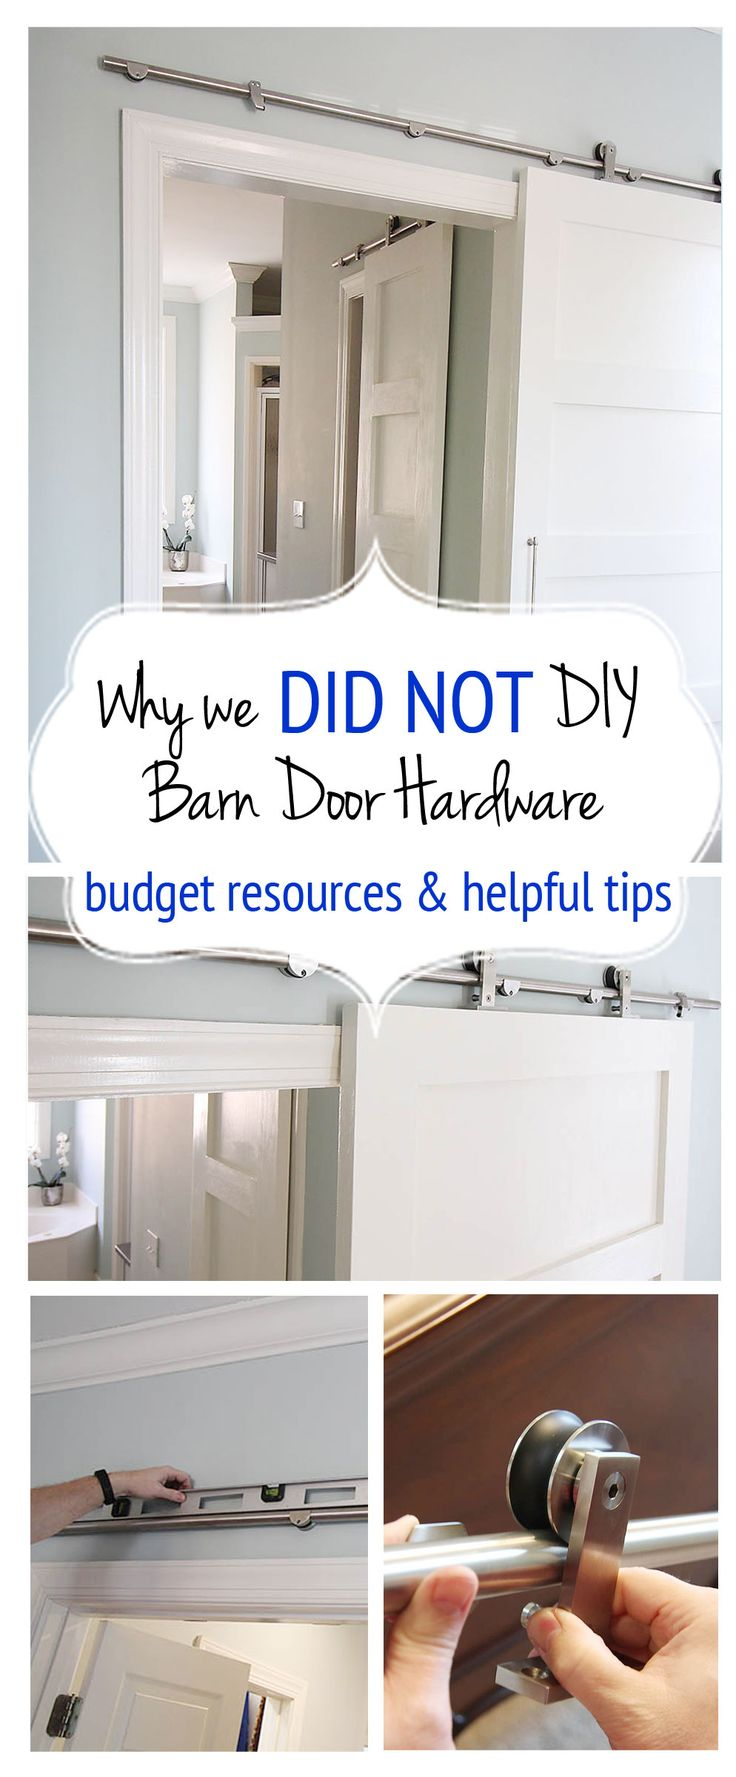 Build sliding cabinet doors - Modern Barn Door Hardware Review And Instructions Diy Sliding